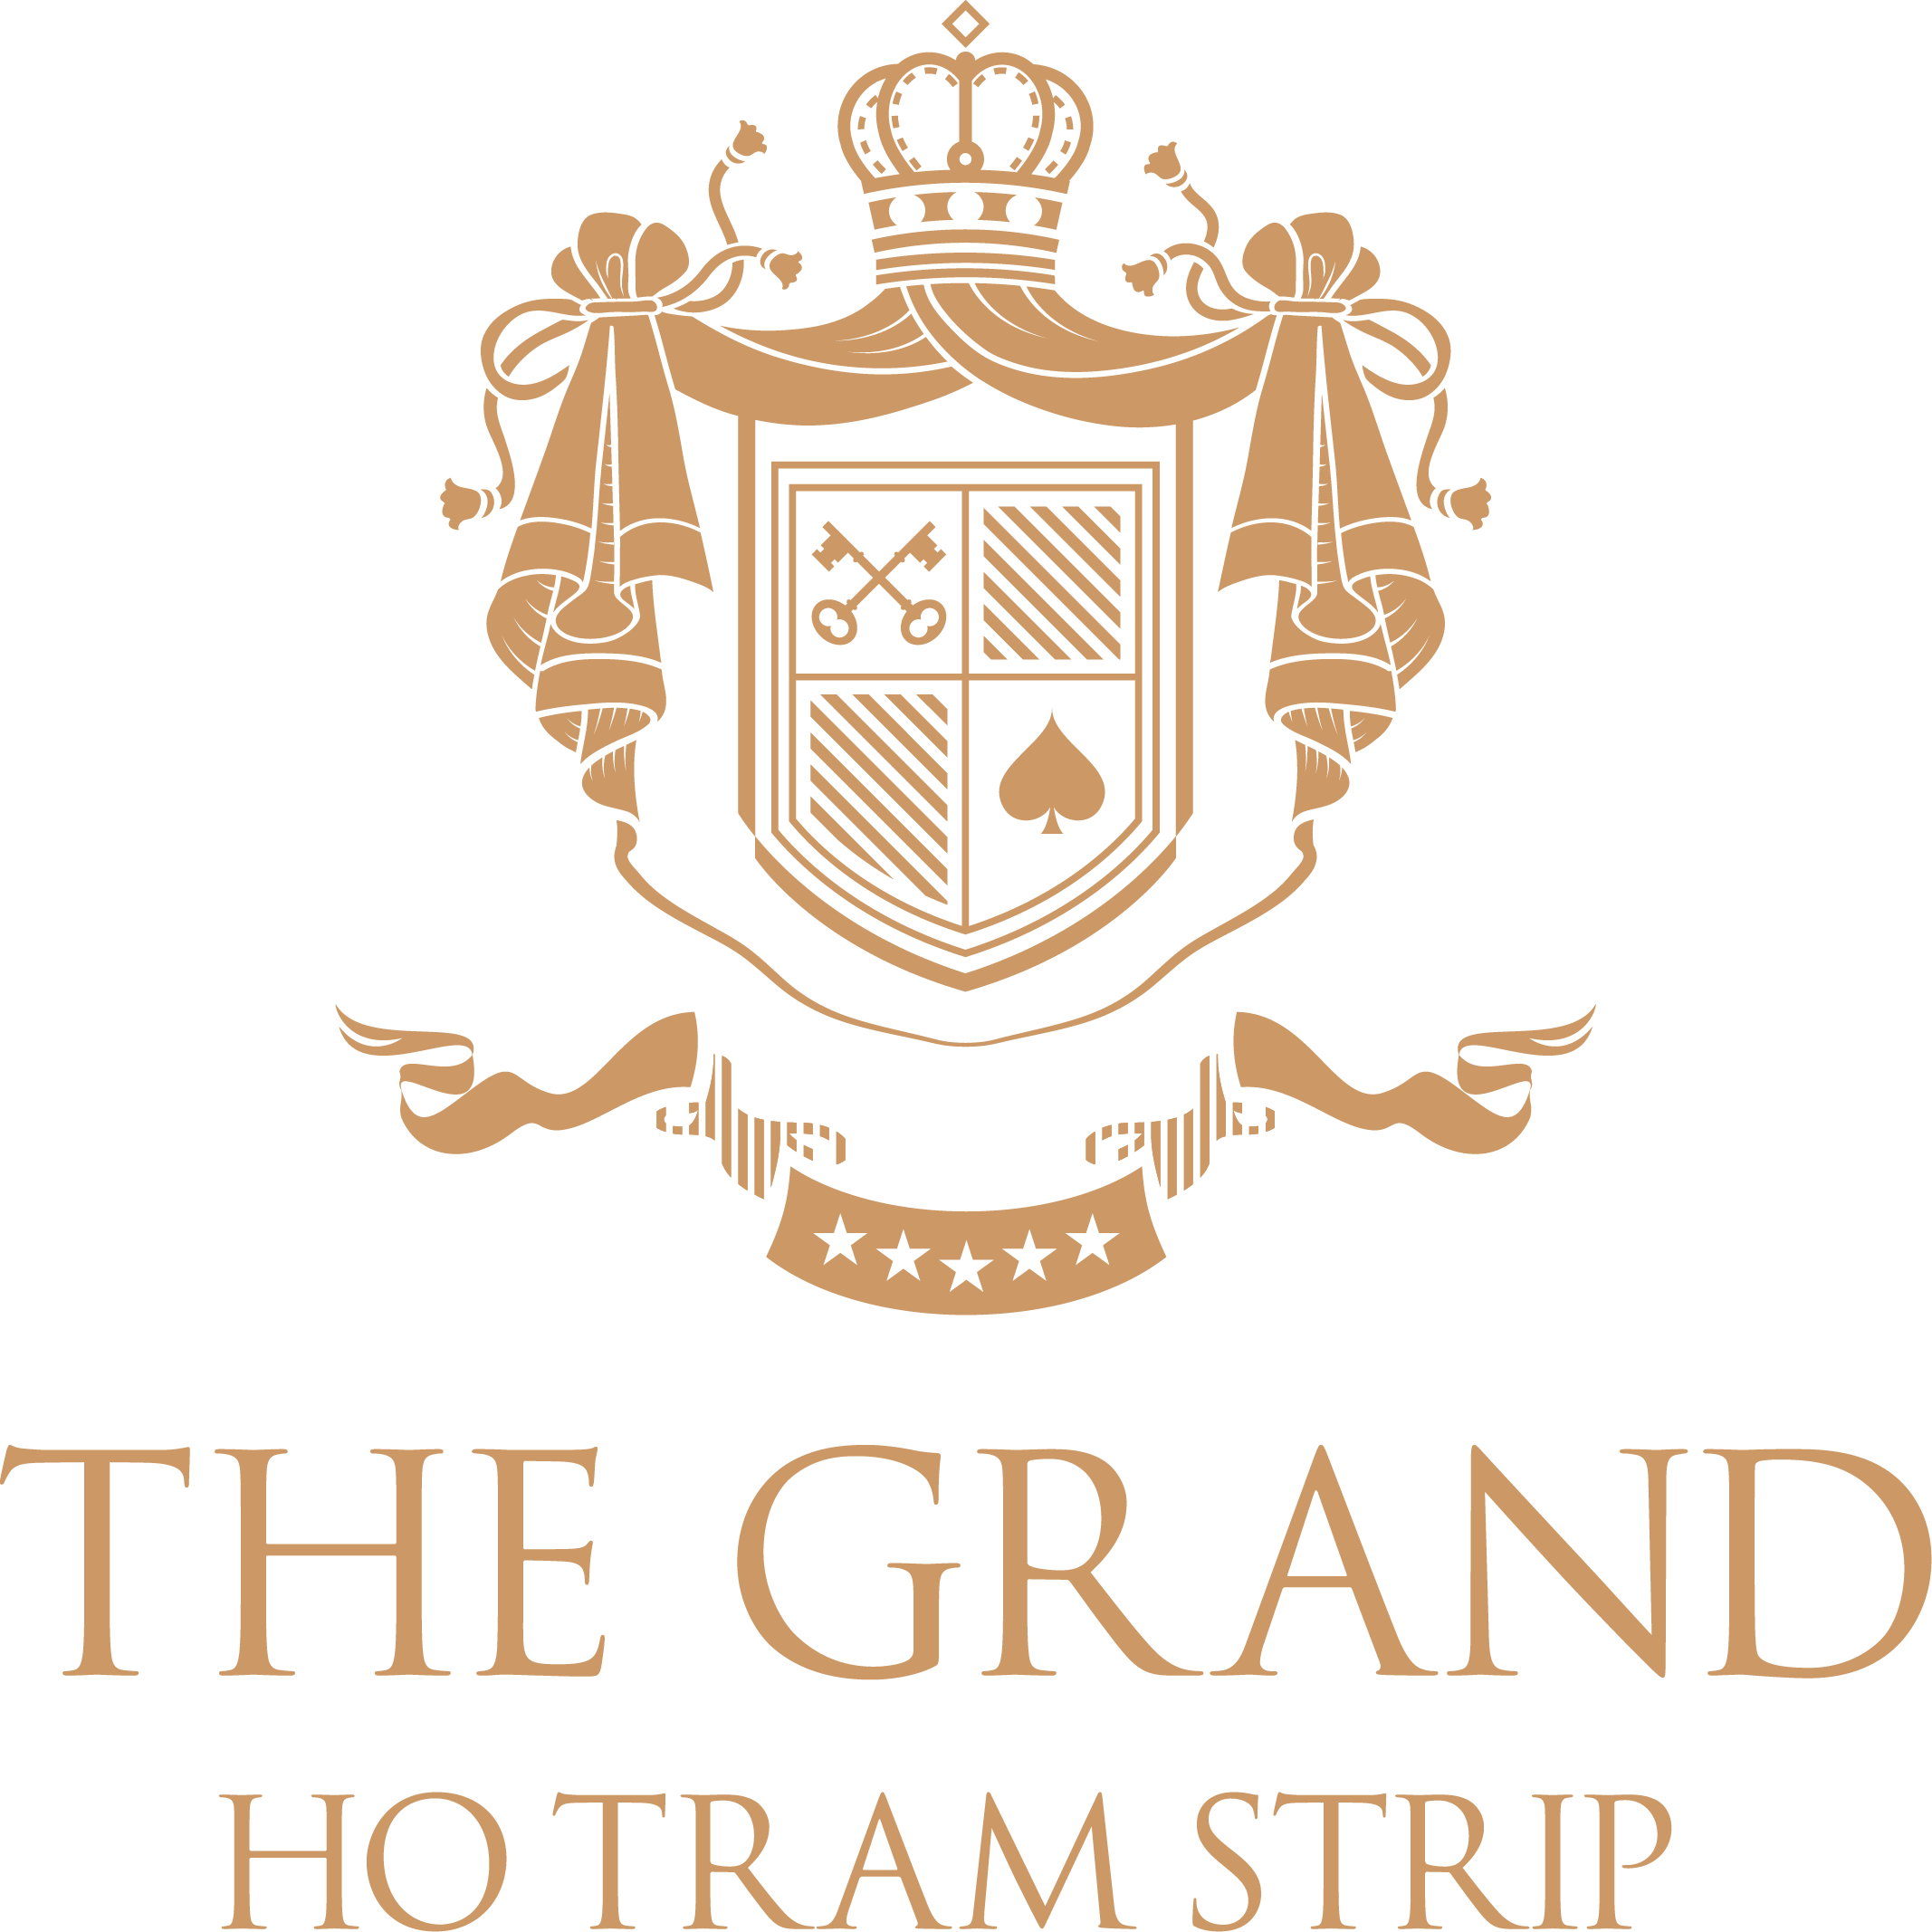 GRAND HO TRAM STRIP VIETNAM